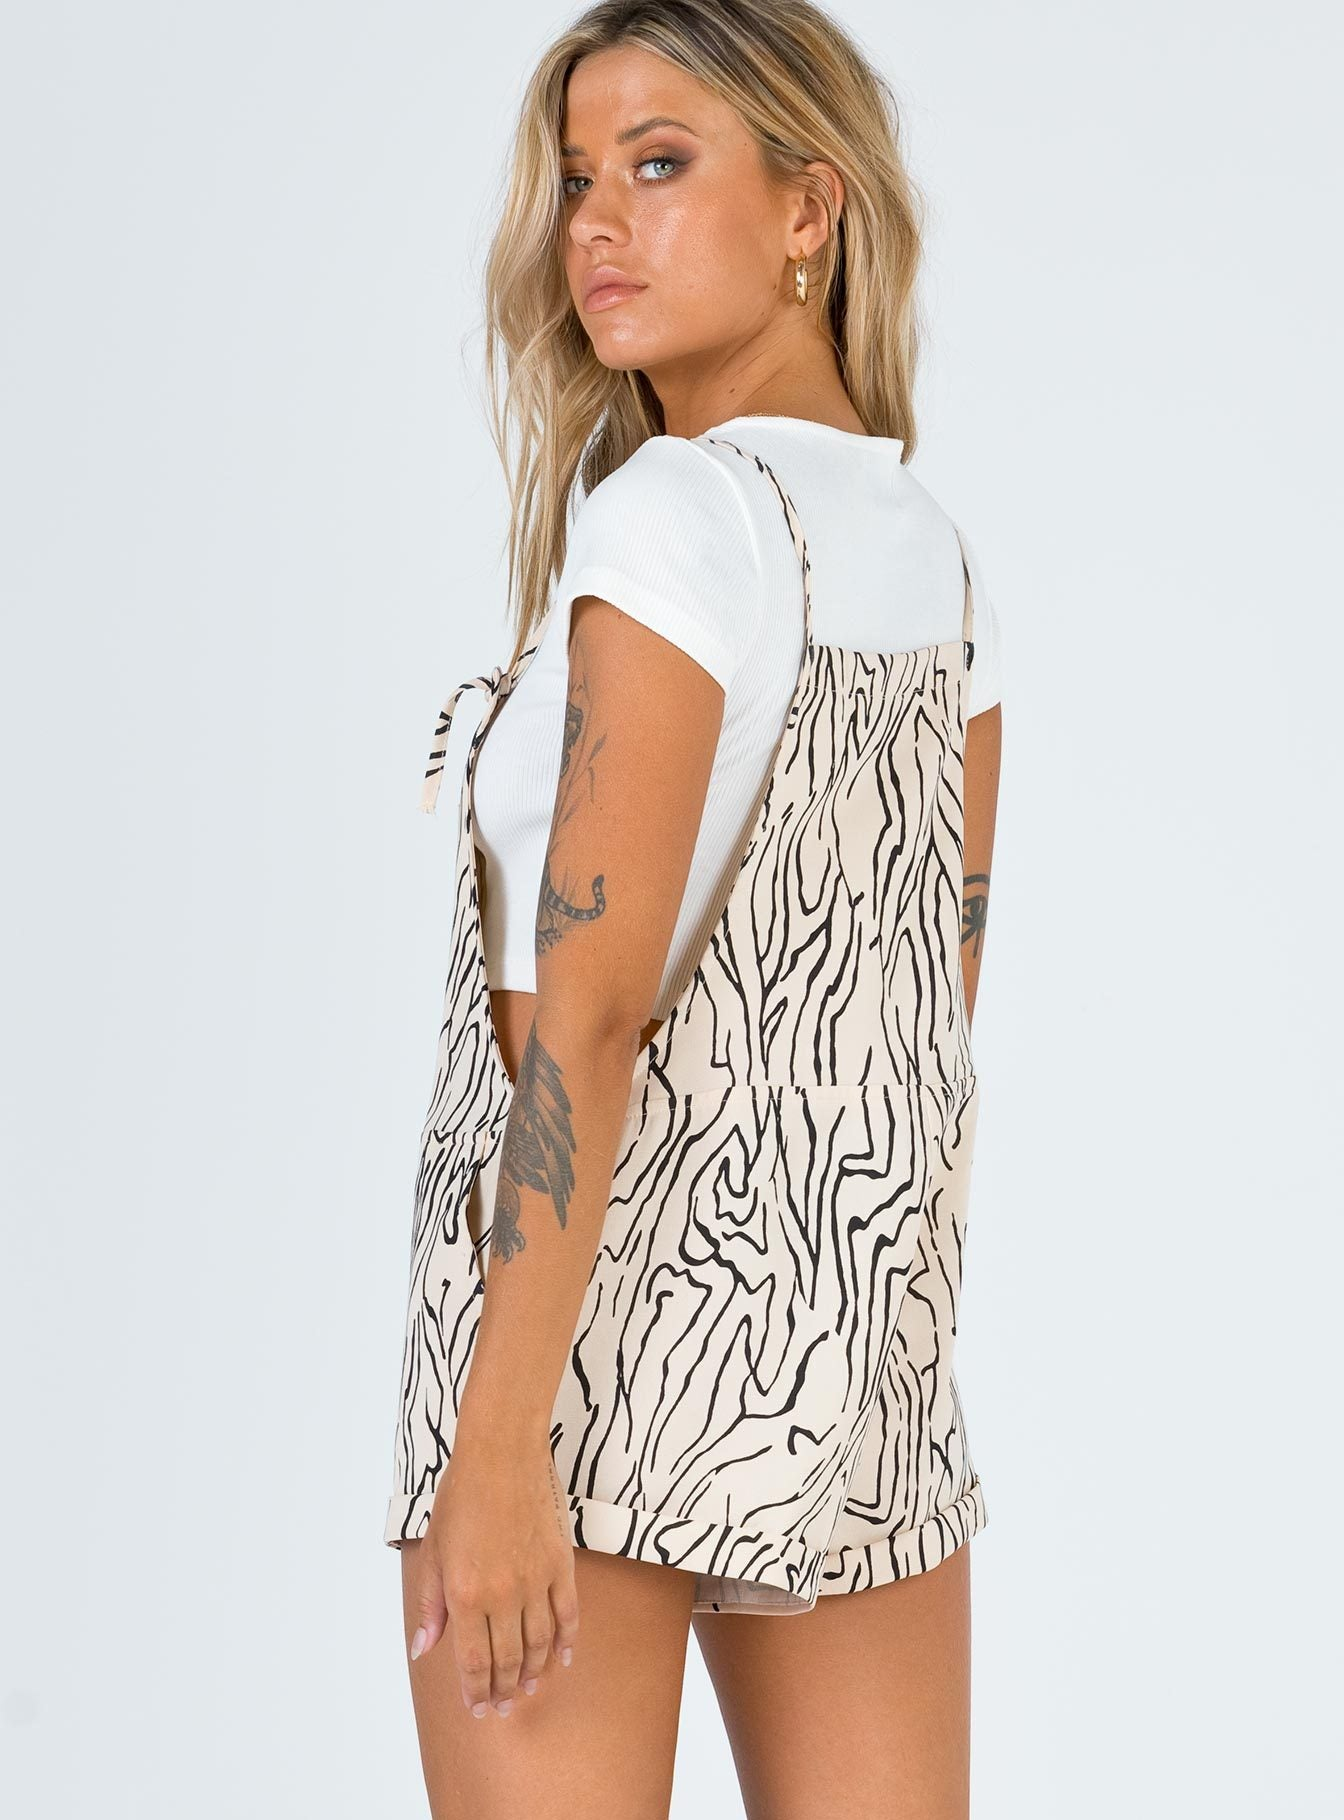 Utopia Playsuit